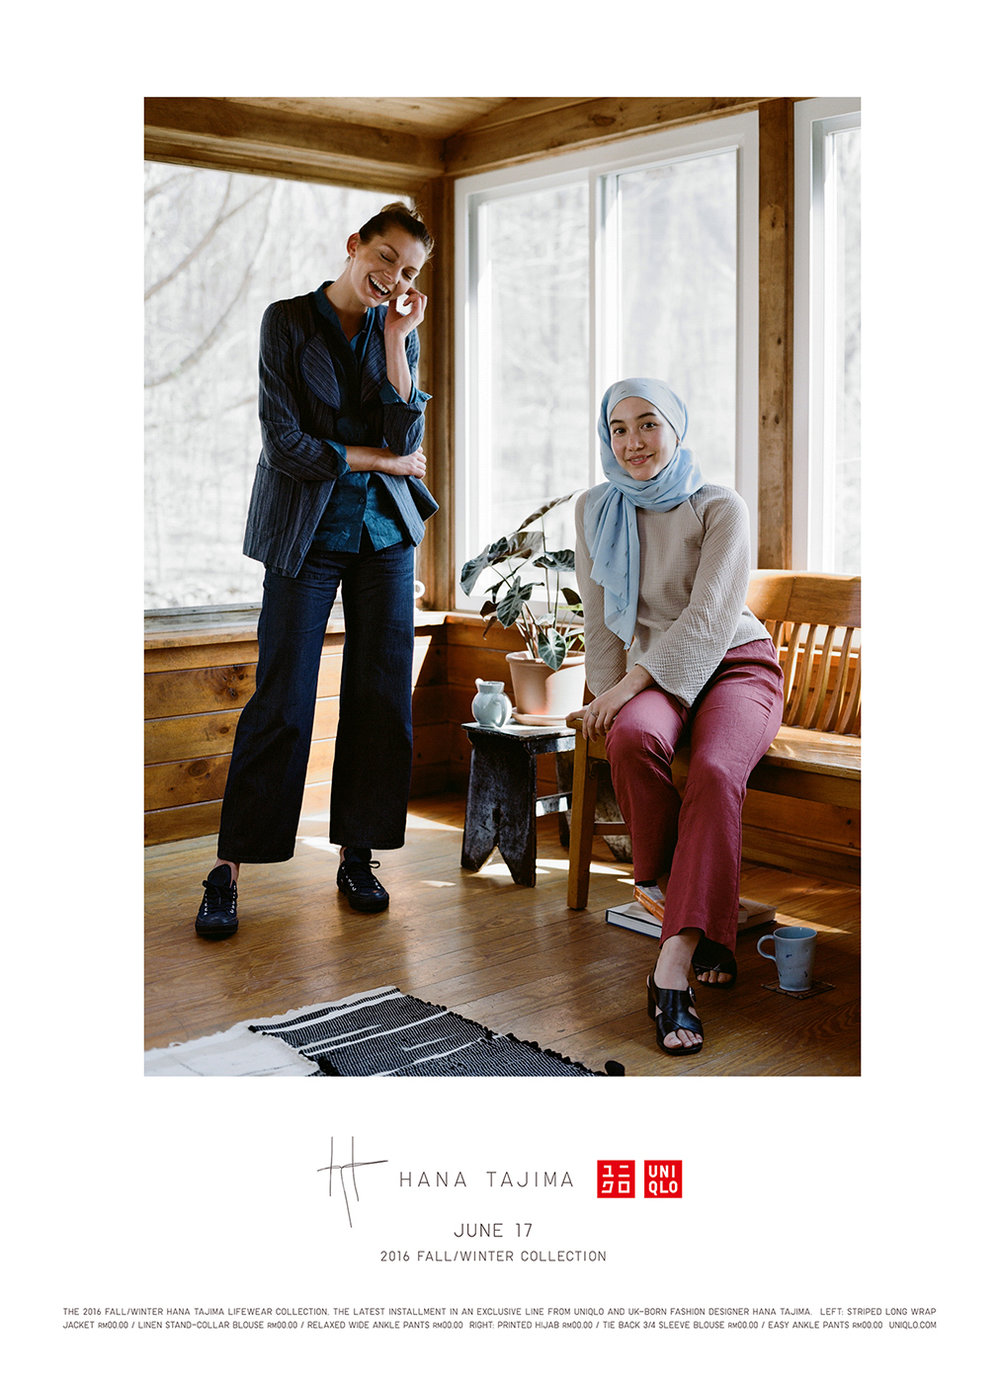 Hana Tajima AW16 for UNIQLO.